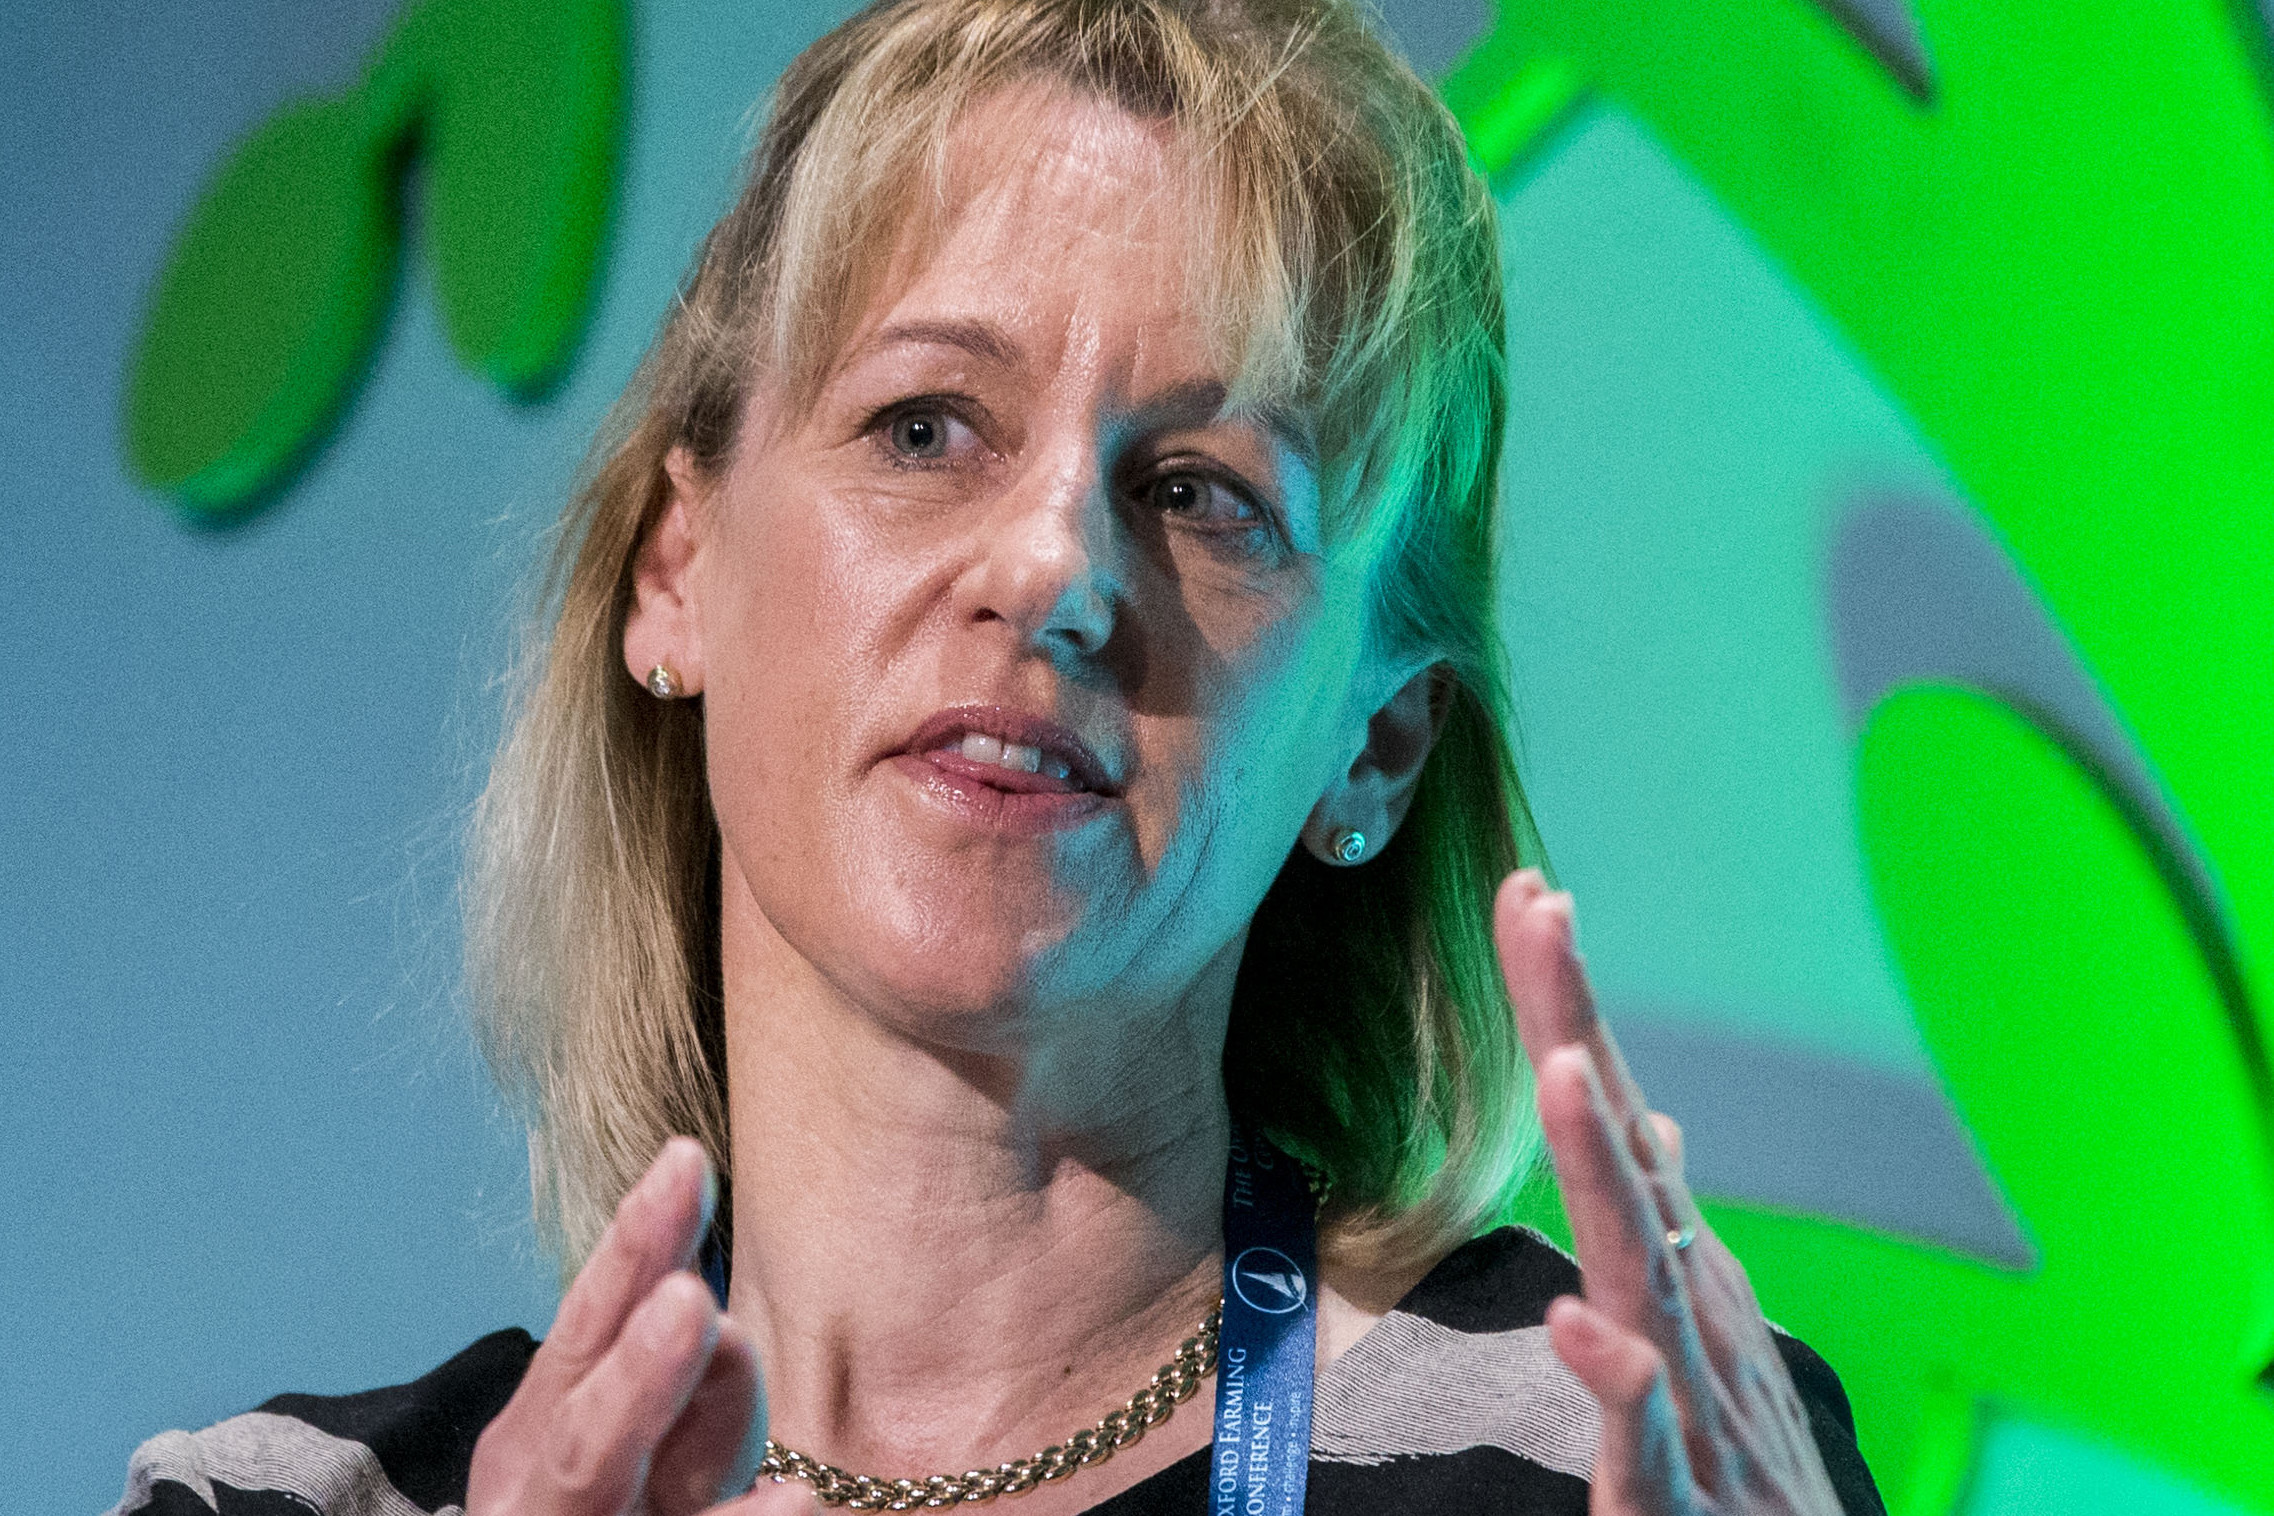 """Minette Batters, NFU deputy president: """"An abrupt reduction in the number of EU workers able to work in the UK after we leave the EU would cause massive disruption to the entire food supply chain."""" Photo: David Hartley / Rex / Shutterstock"""